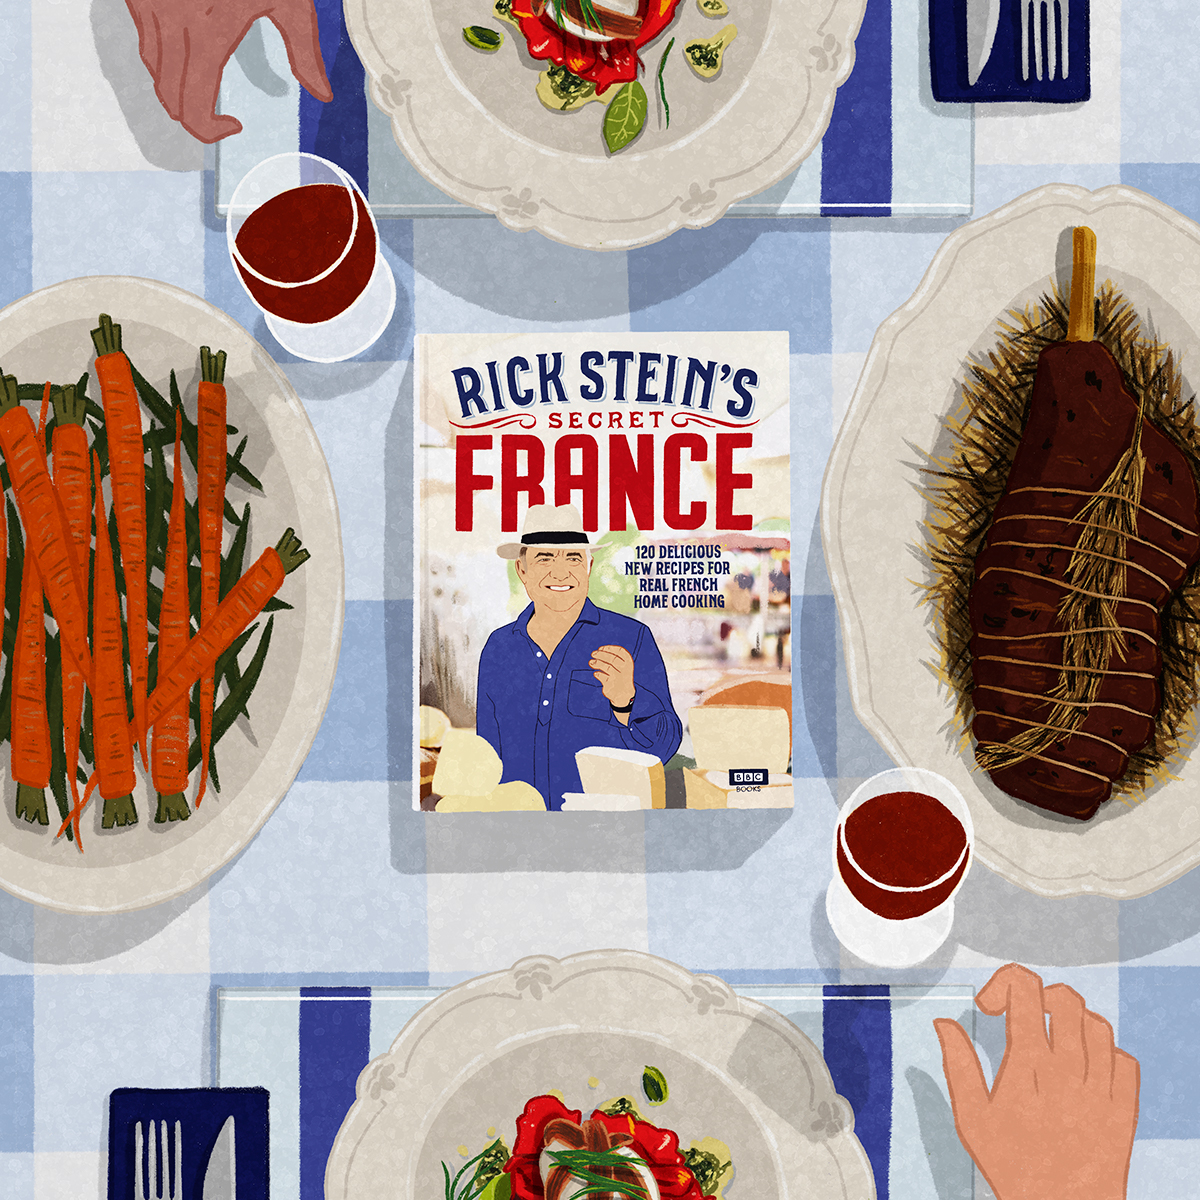 Next up in our Home-Cooked Summer series is chef @Rick_Stein, who shares his thoughts on lockdown cooking as well as 5 essential summer recipes from his latest book, Rick Stein's Secret France: https://t.co/IAS5brQjDg https://t.co/Xg2jh2bEOX